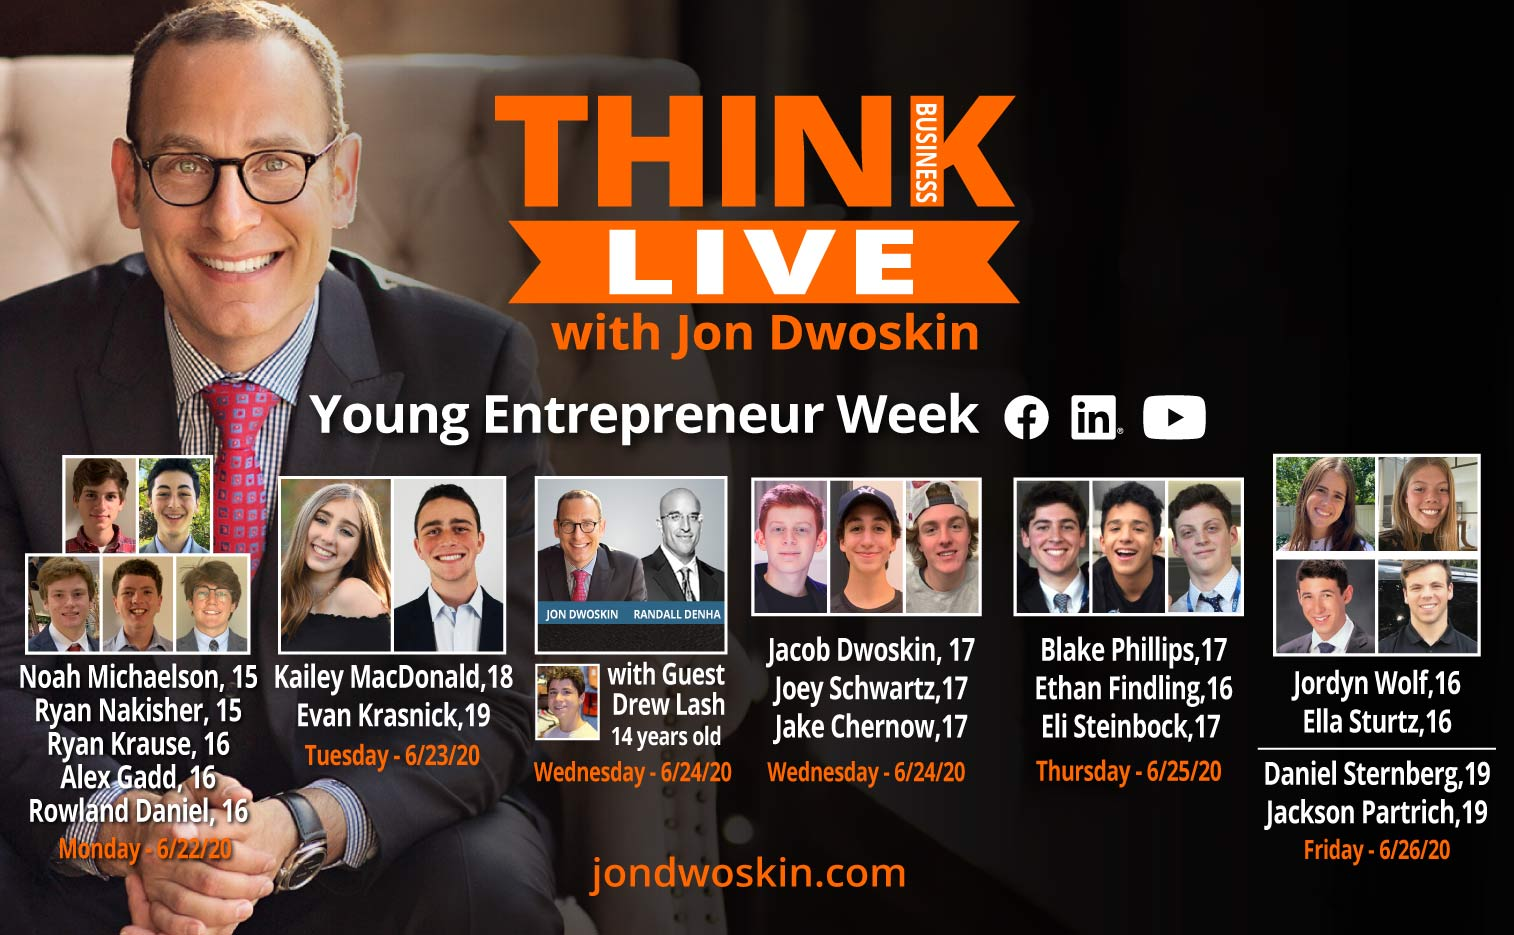 Think Business LIVE: Jon Dwoskin Talks LIVE with Jared Rothberger, CEO, Jan-Pro Detroit